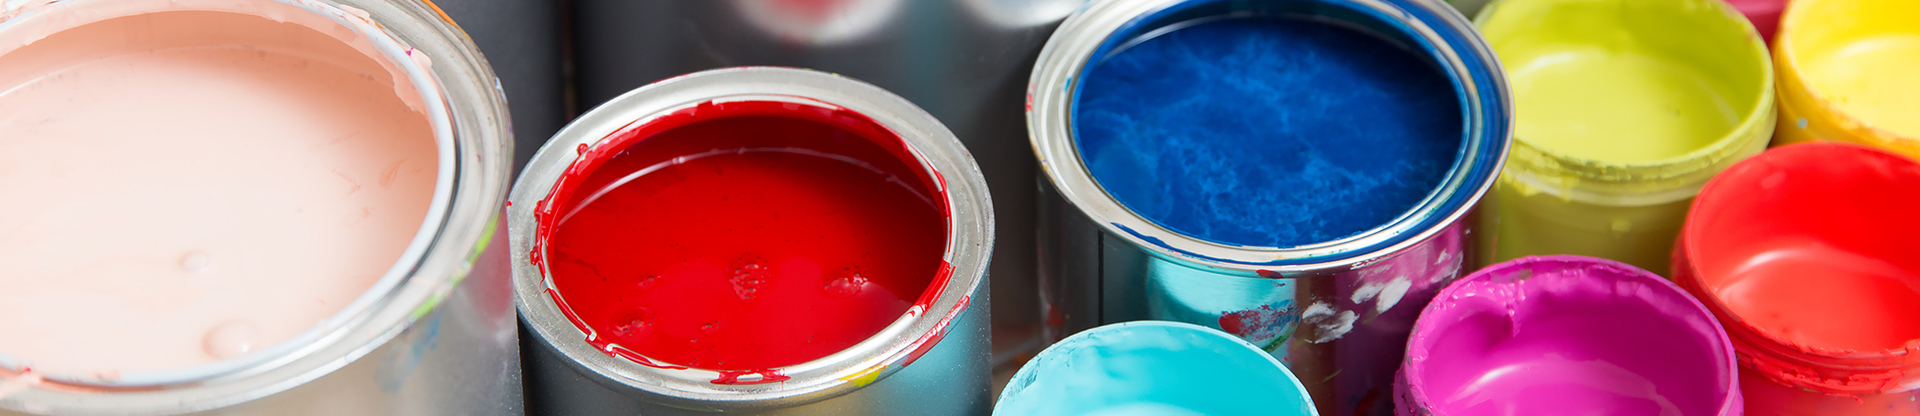 Ecsa chemicals paints